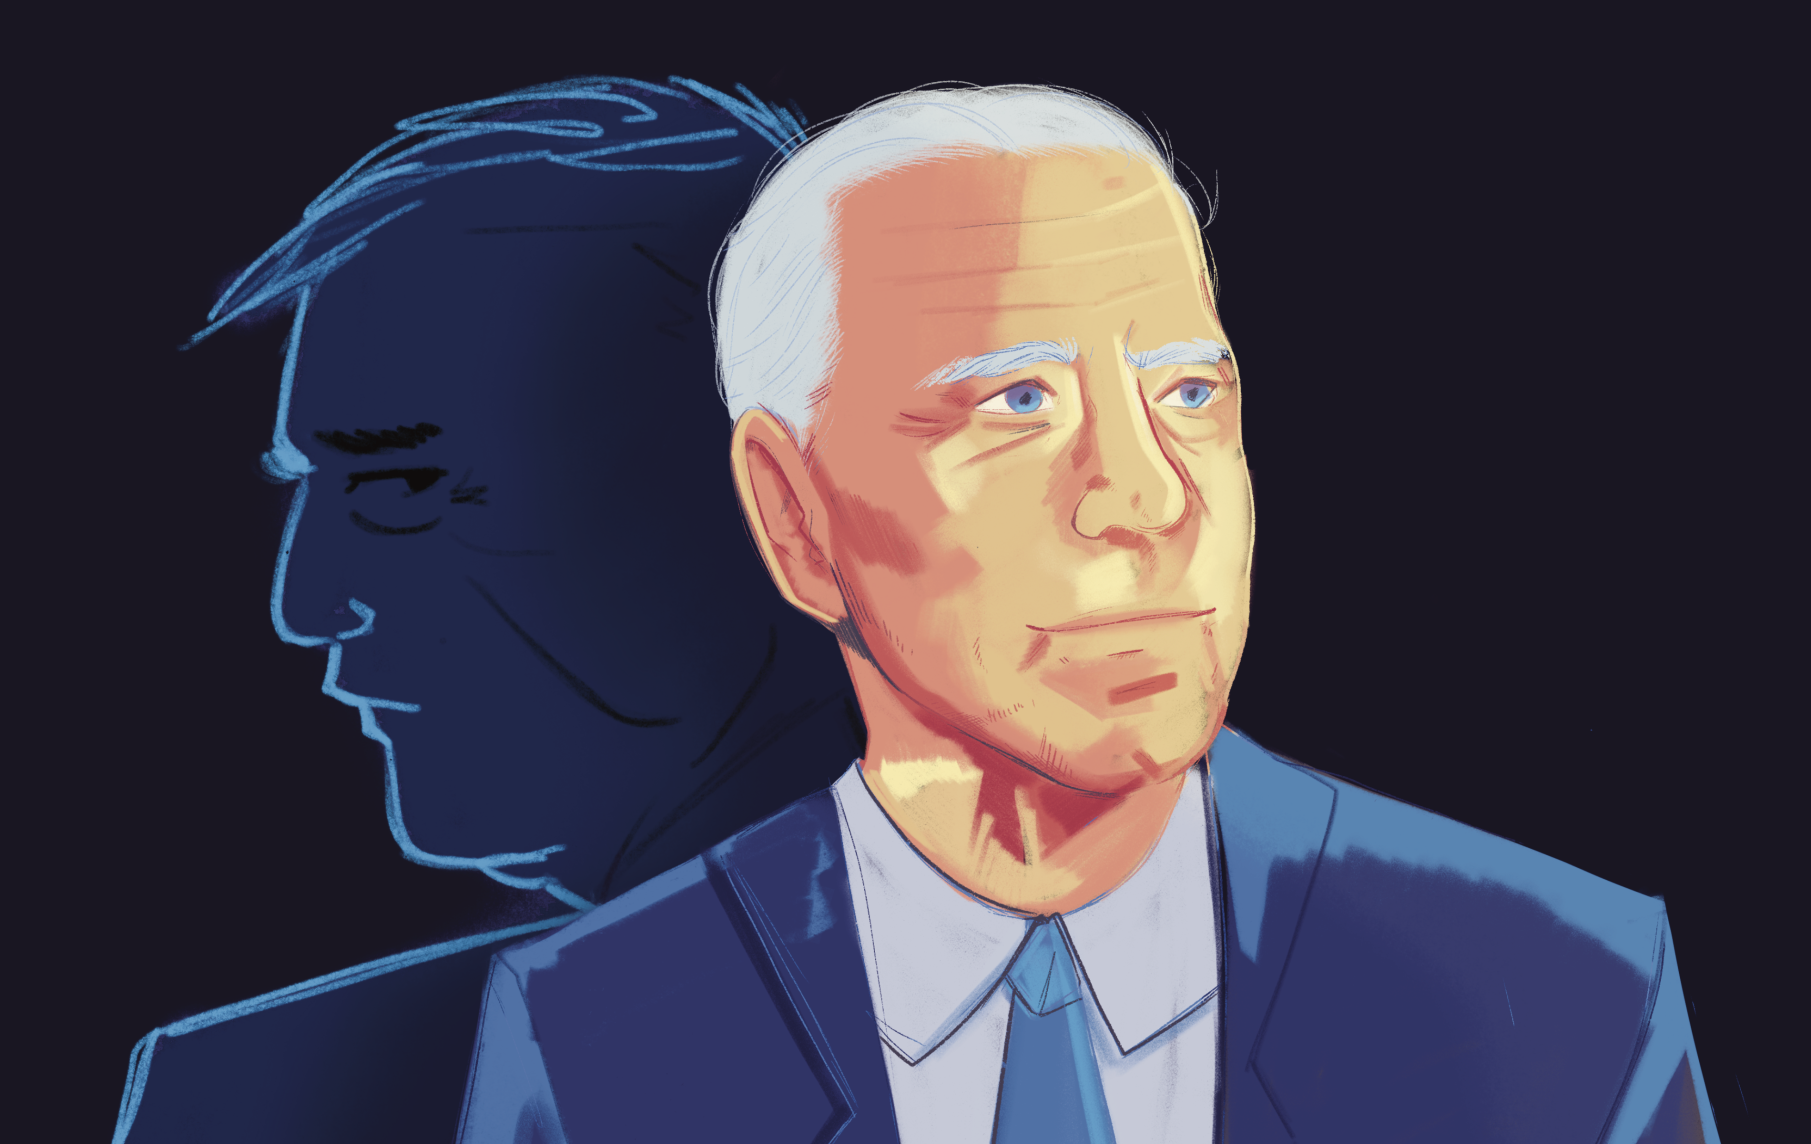 Opinion: Progressives should grit their teeth and vote for Biden